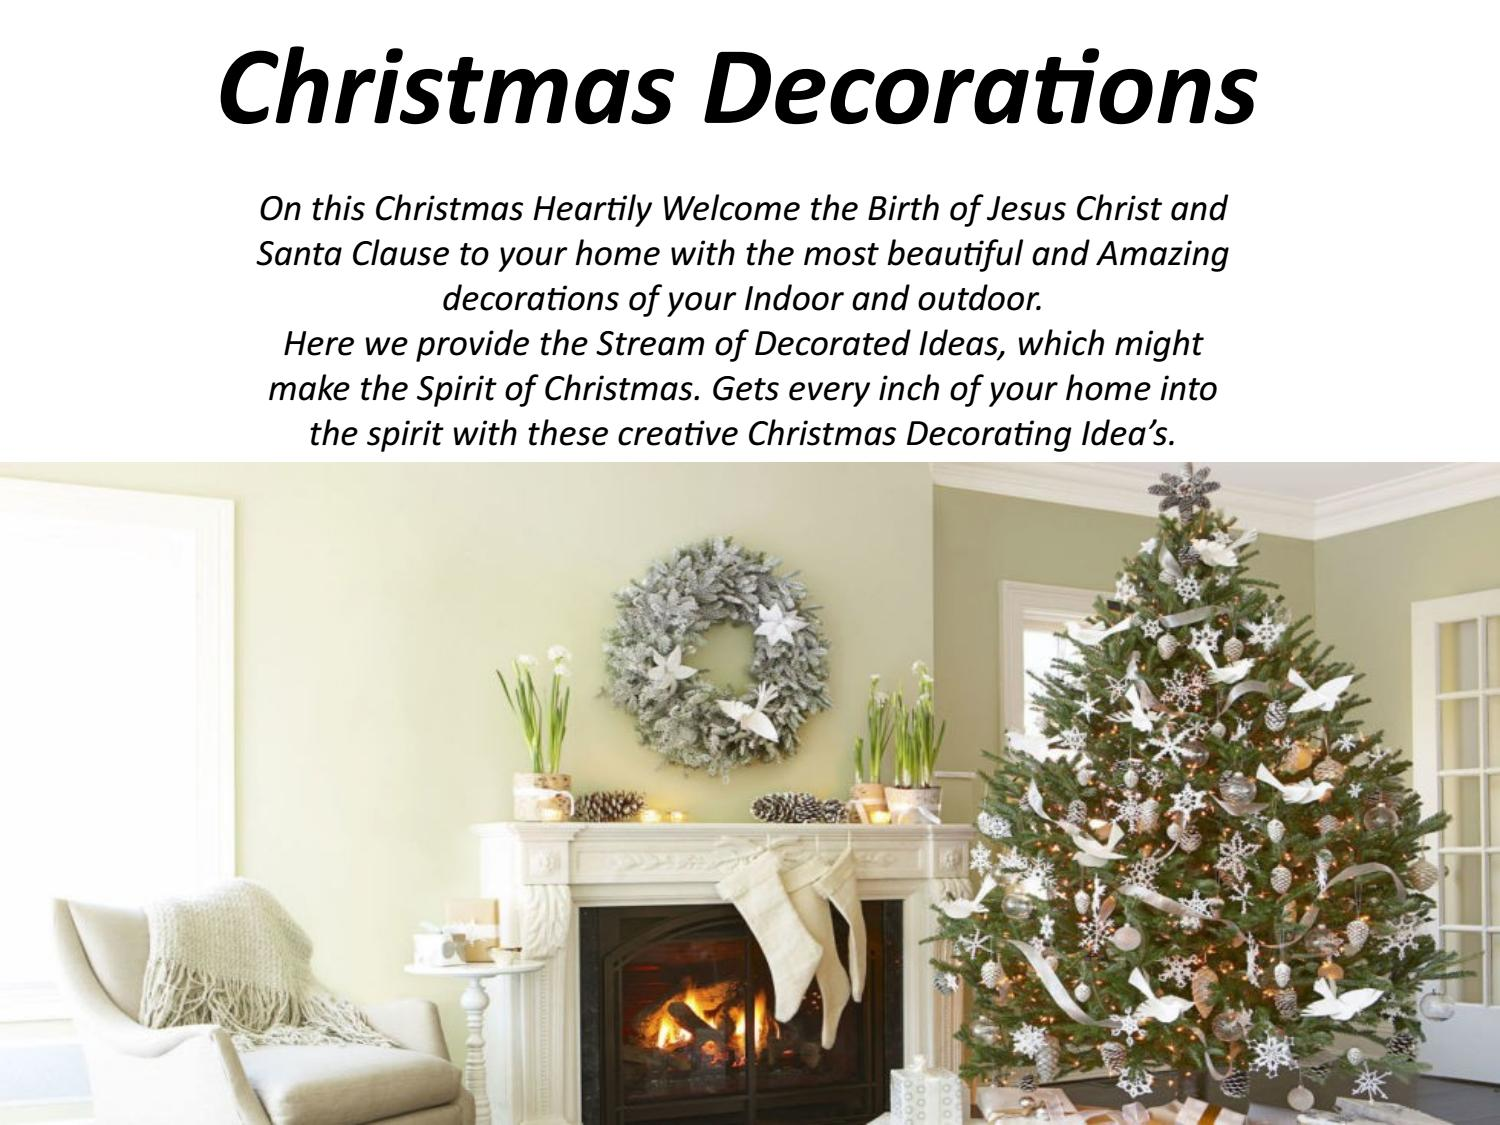 Christmas decorations by 99merrychristmas - issuu